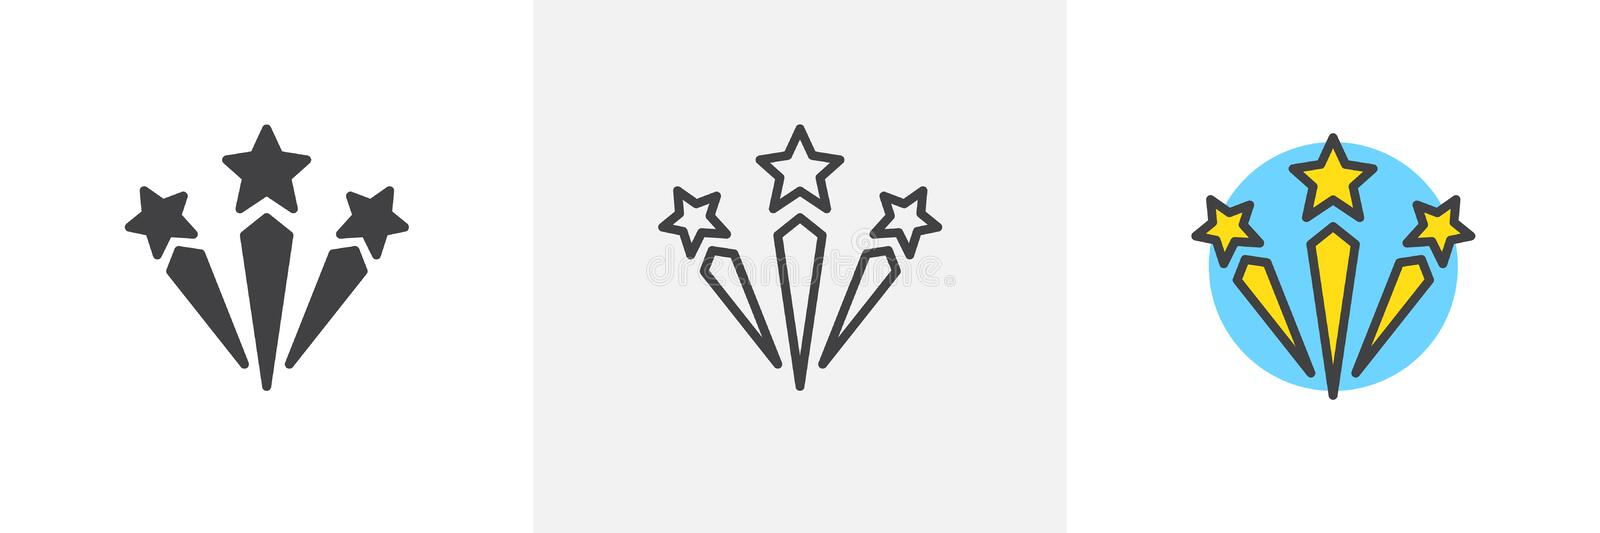 Fireworks different style icons. Fireworks icon. Line, solid and filled outline colorful version, outline and filled vector sign. Pyrotechnics symbol, logo royalty free illustration